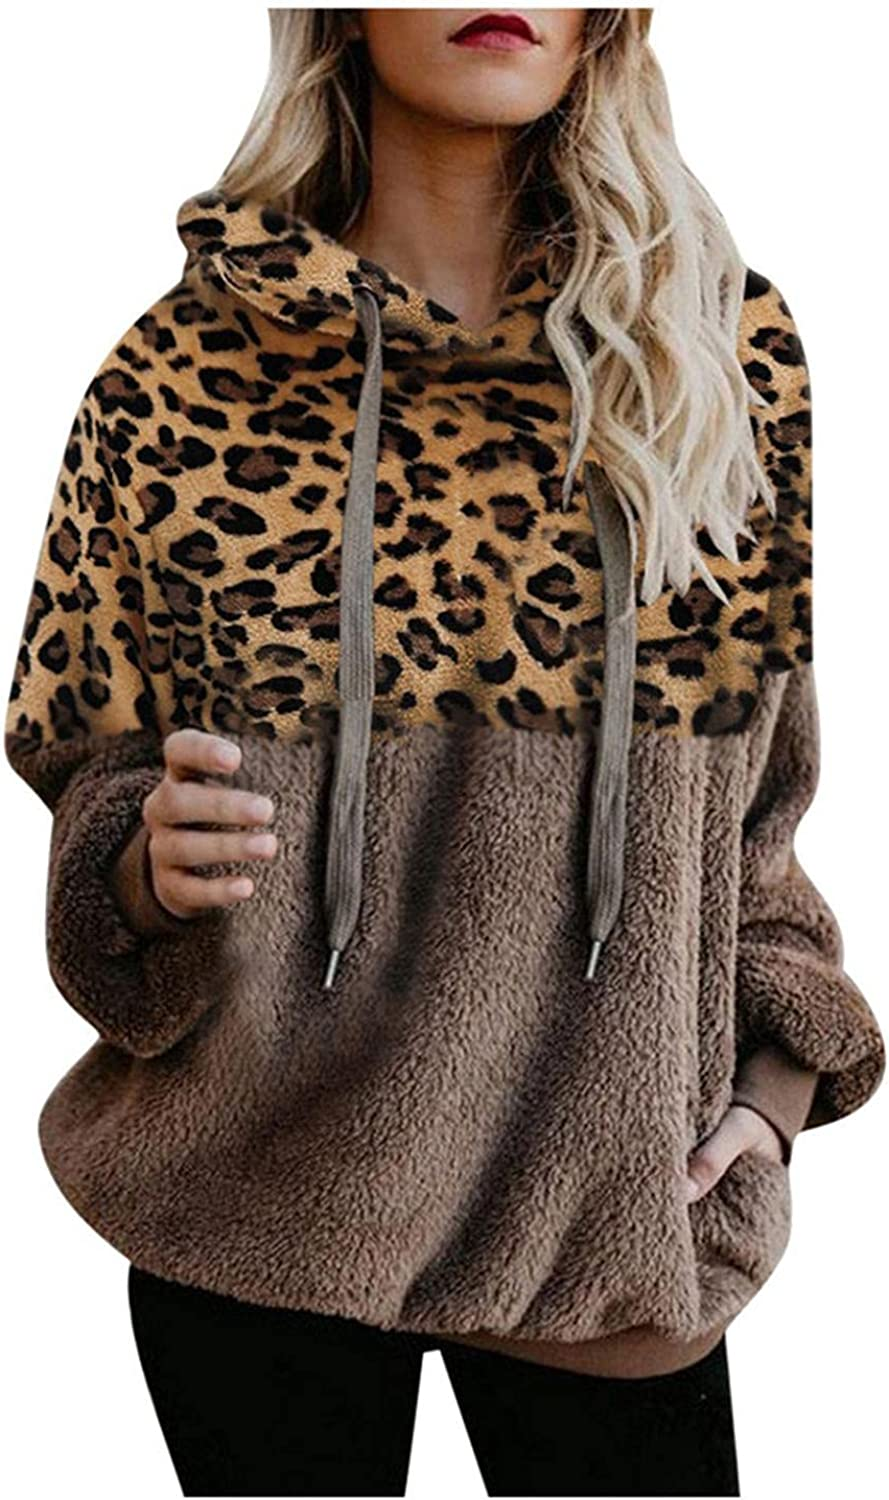 AODONG Hoodies for Womens Oversized Leopard Double Fuzzy Warm Casual Pullover Hooded Sweatshirt Outwear with Pockets